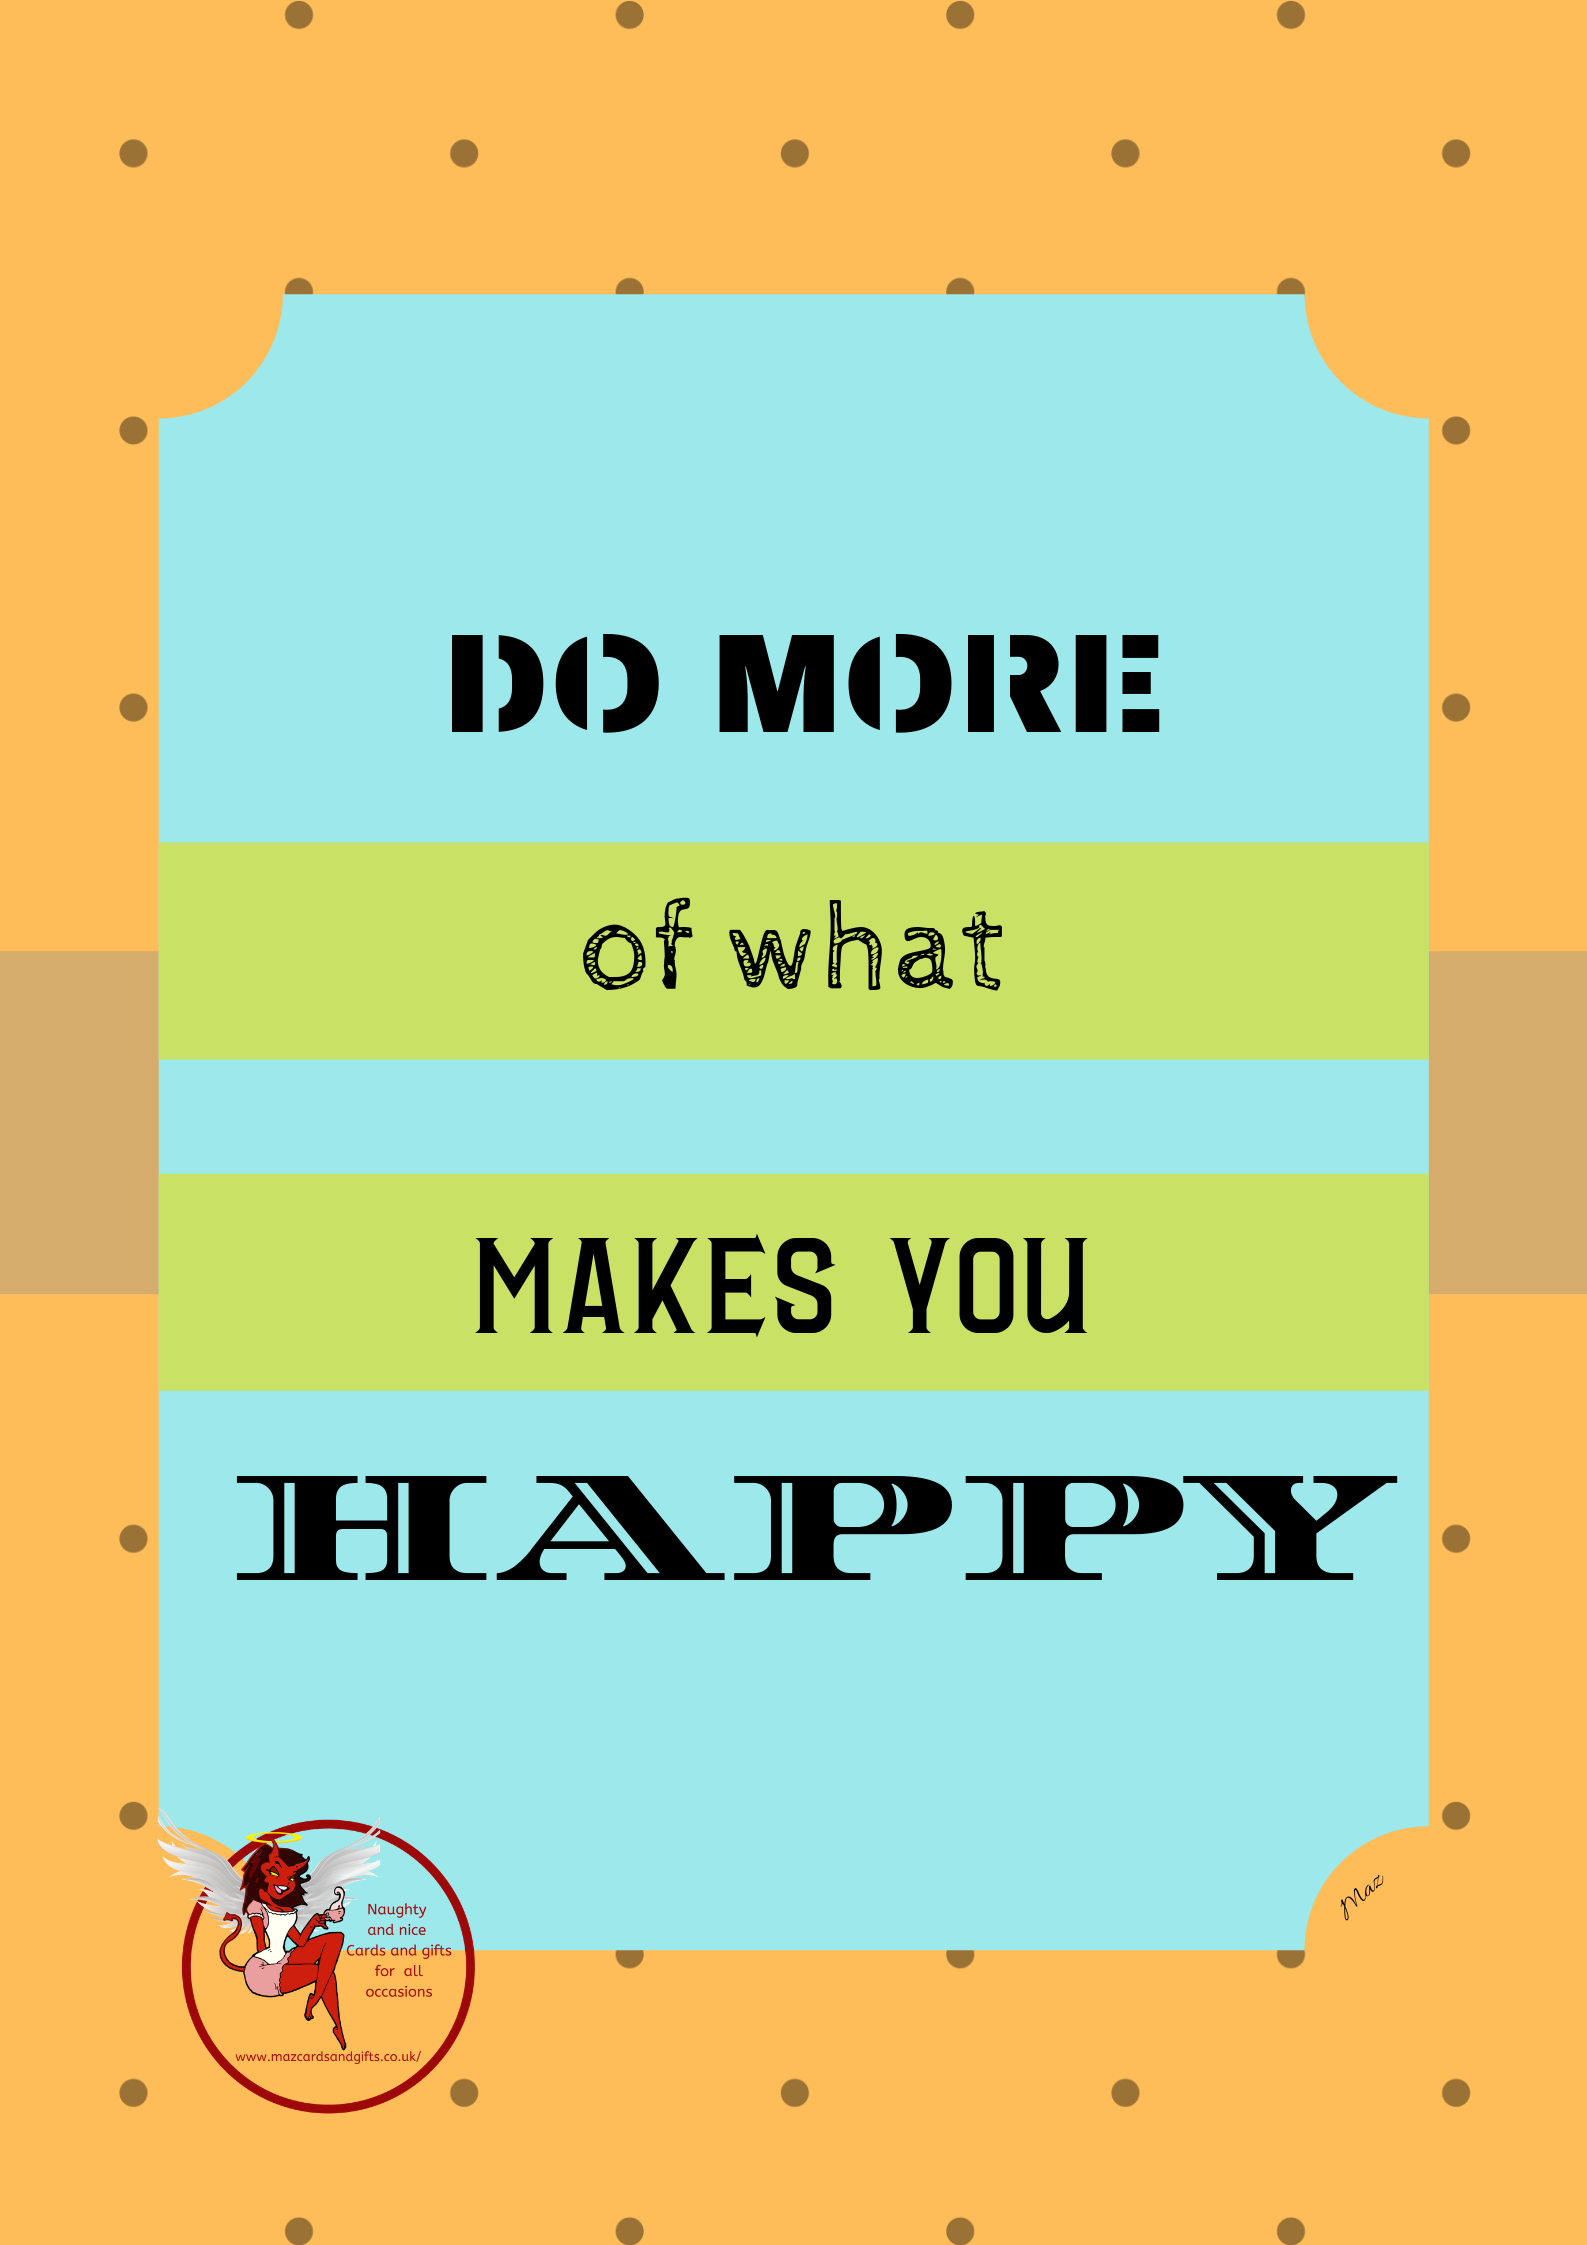 General Card - Just because - Do more of what make you happy - Order No 090